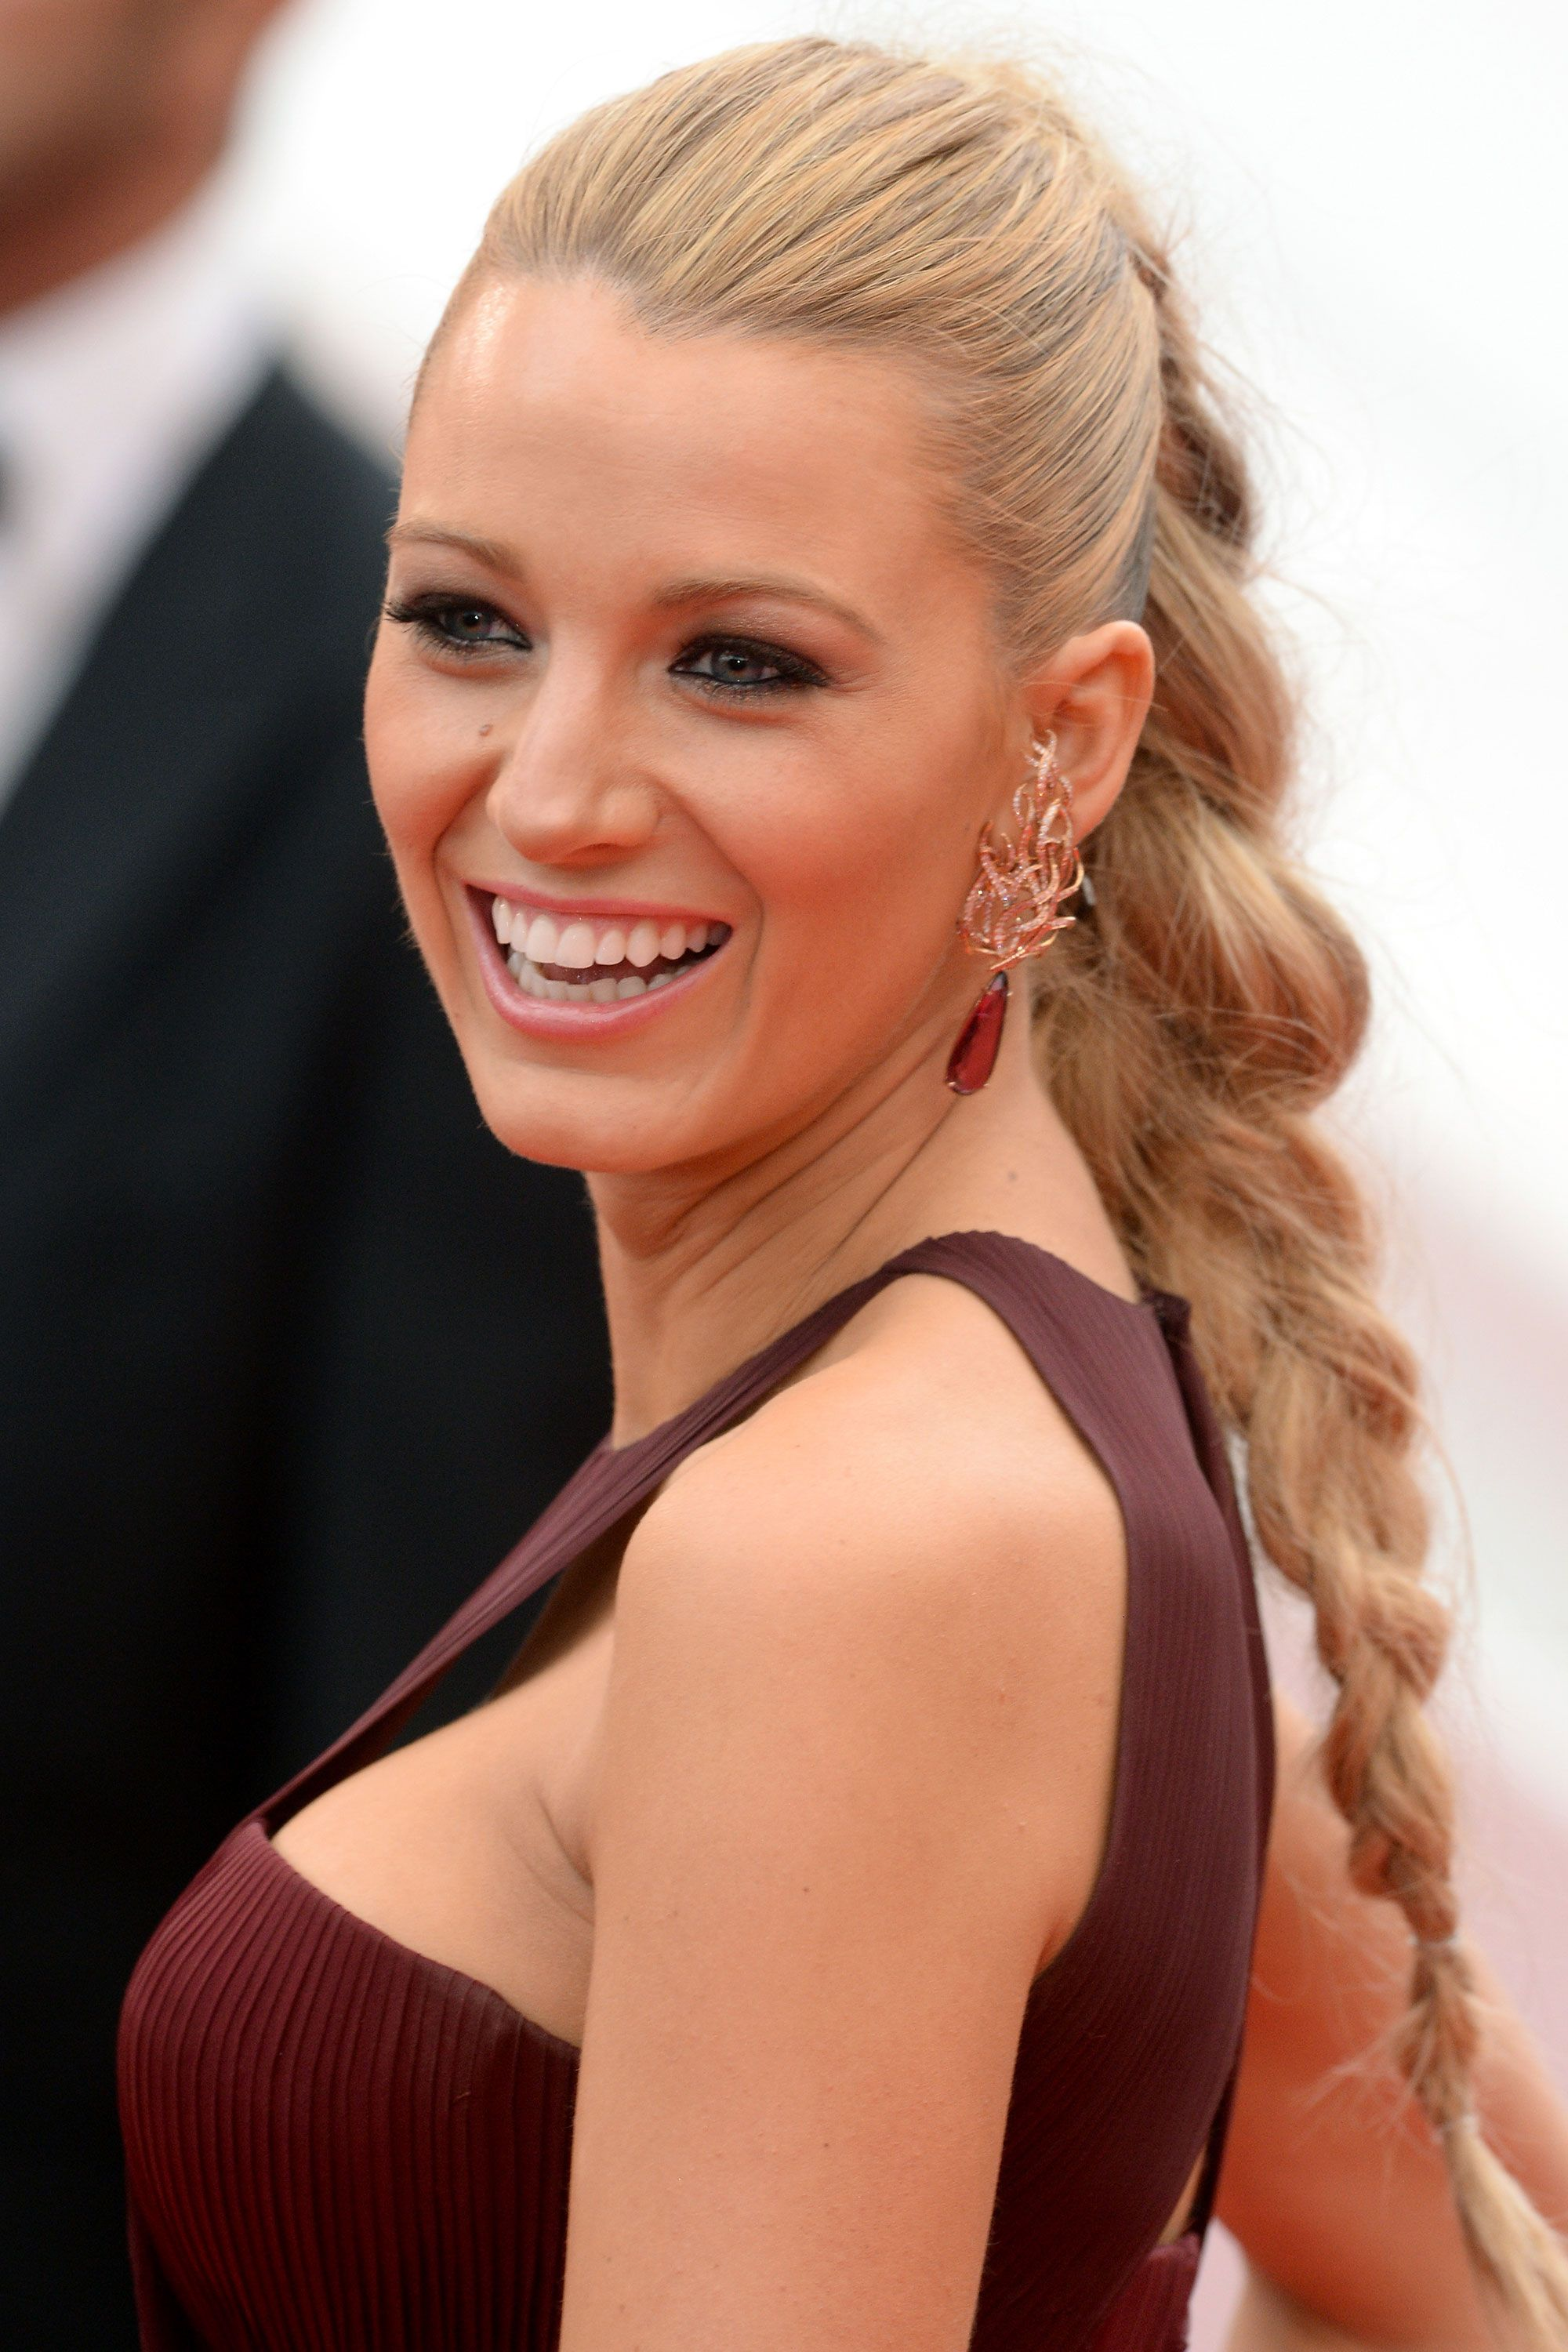 the 14 best braids this year - best celebrity braids and hairstyles